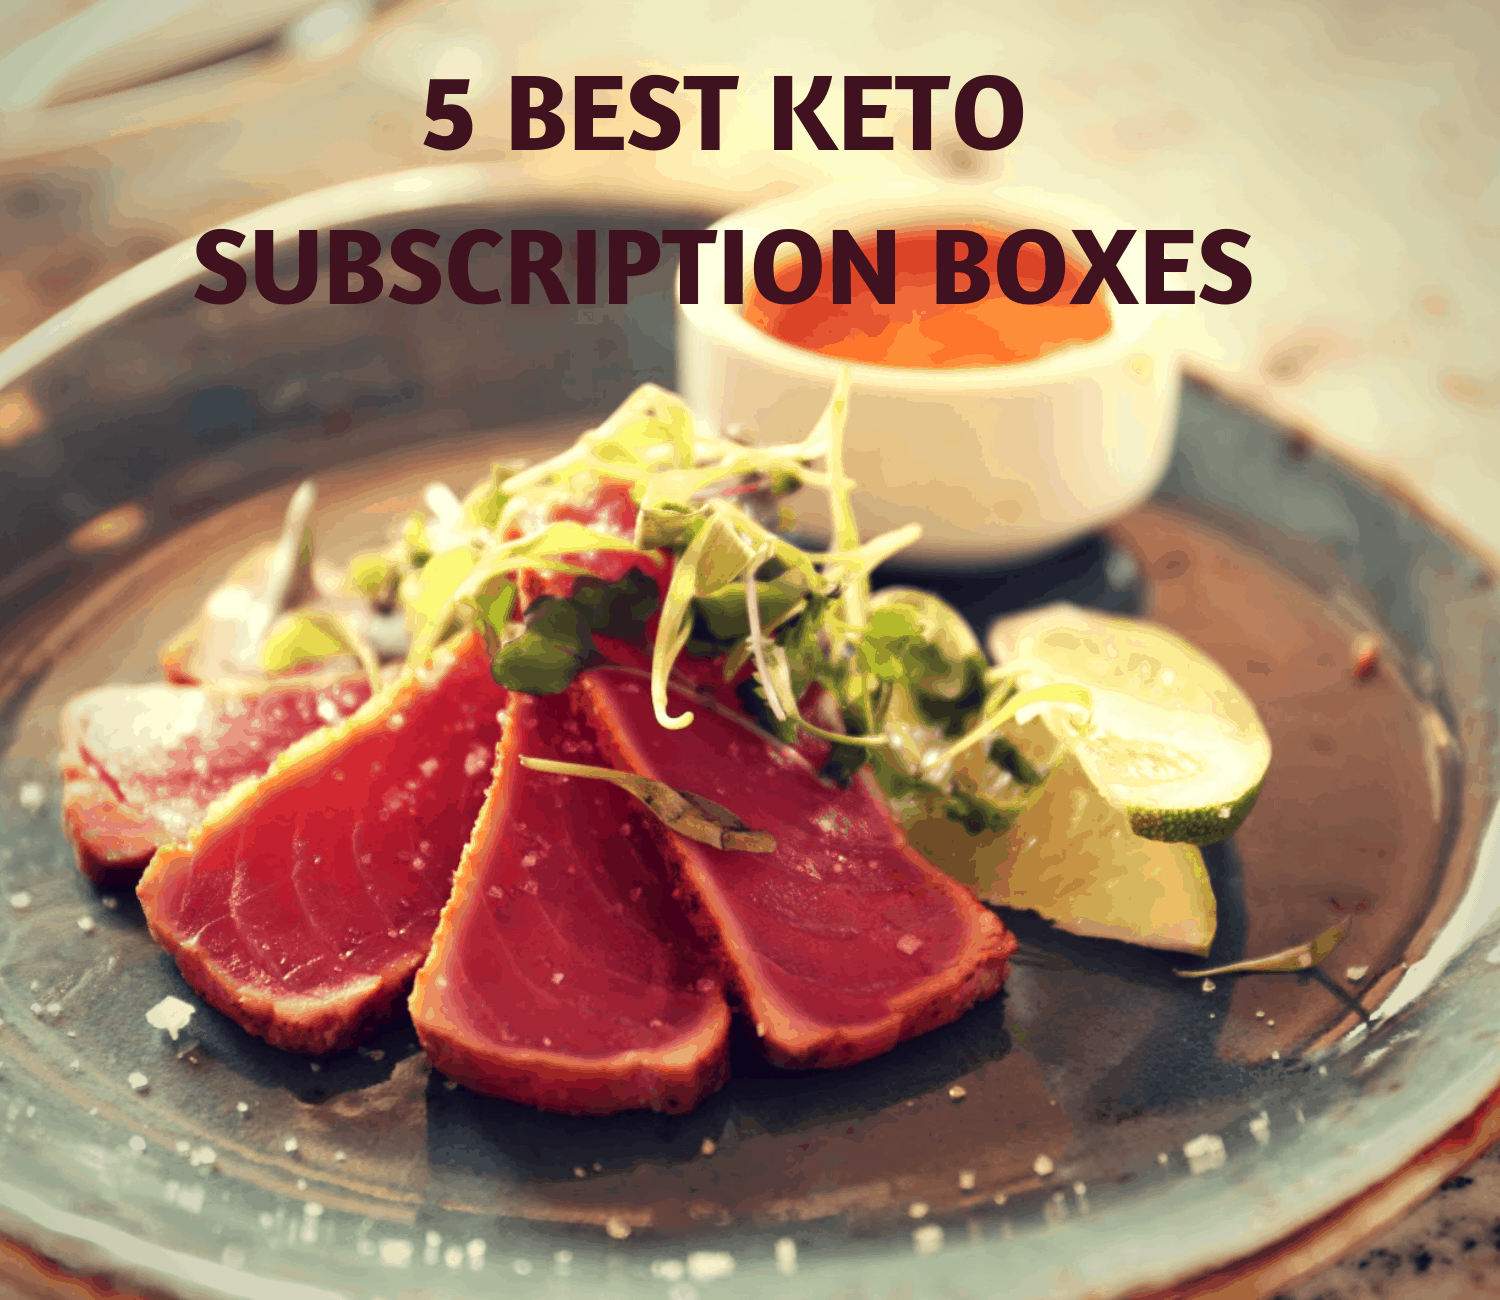 The 5 Best Keto Subscription Boxes - Which One Is Perfect For You